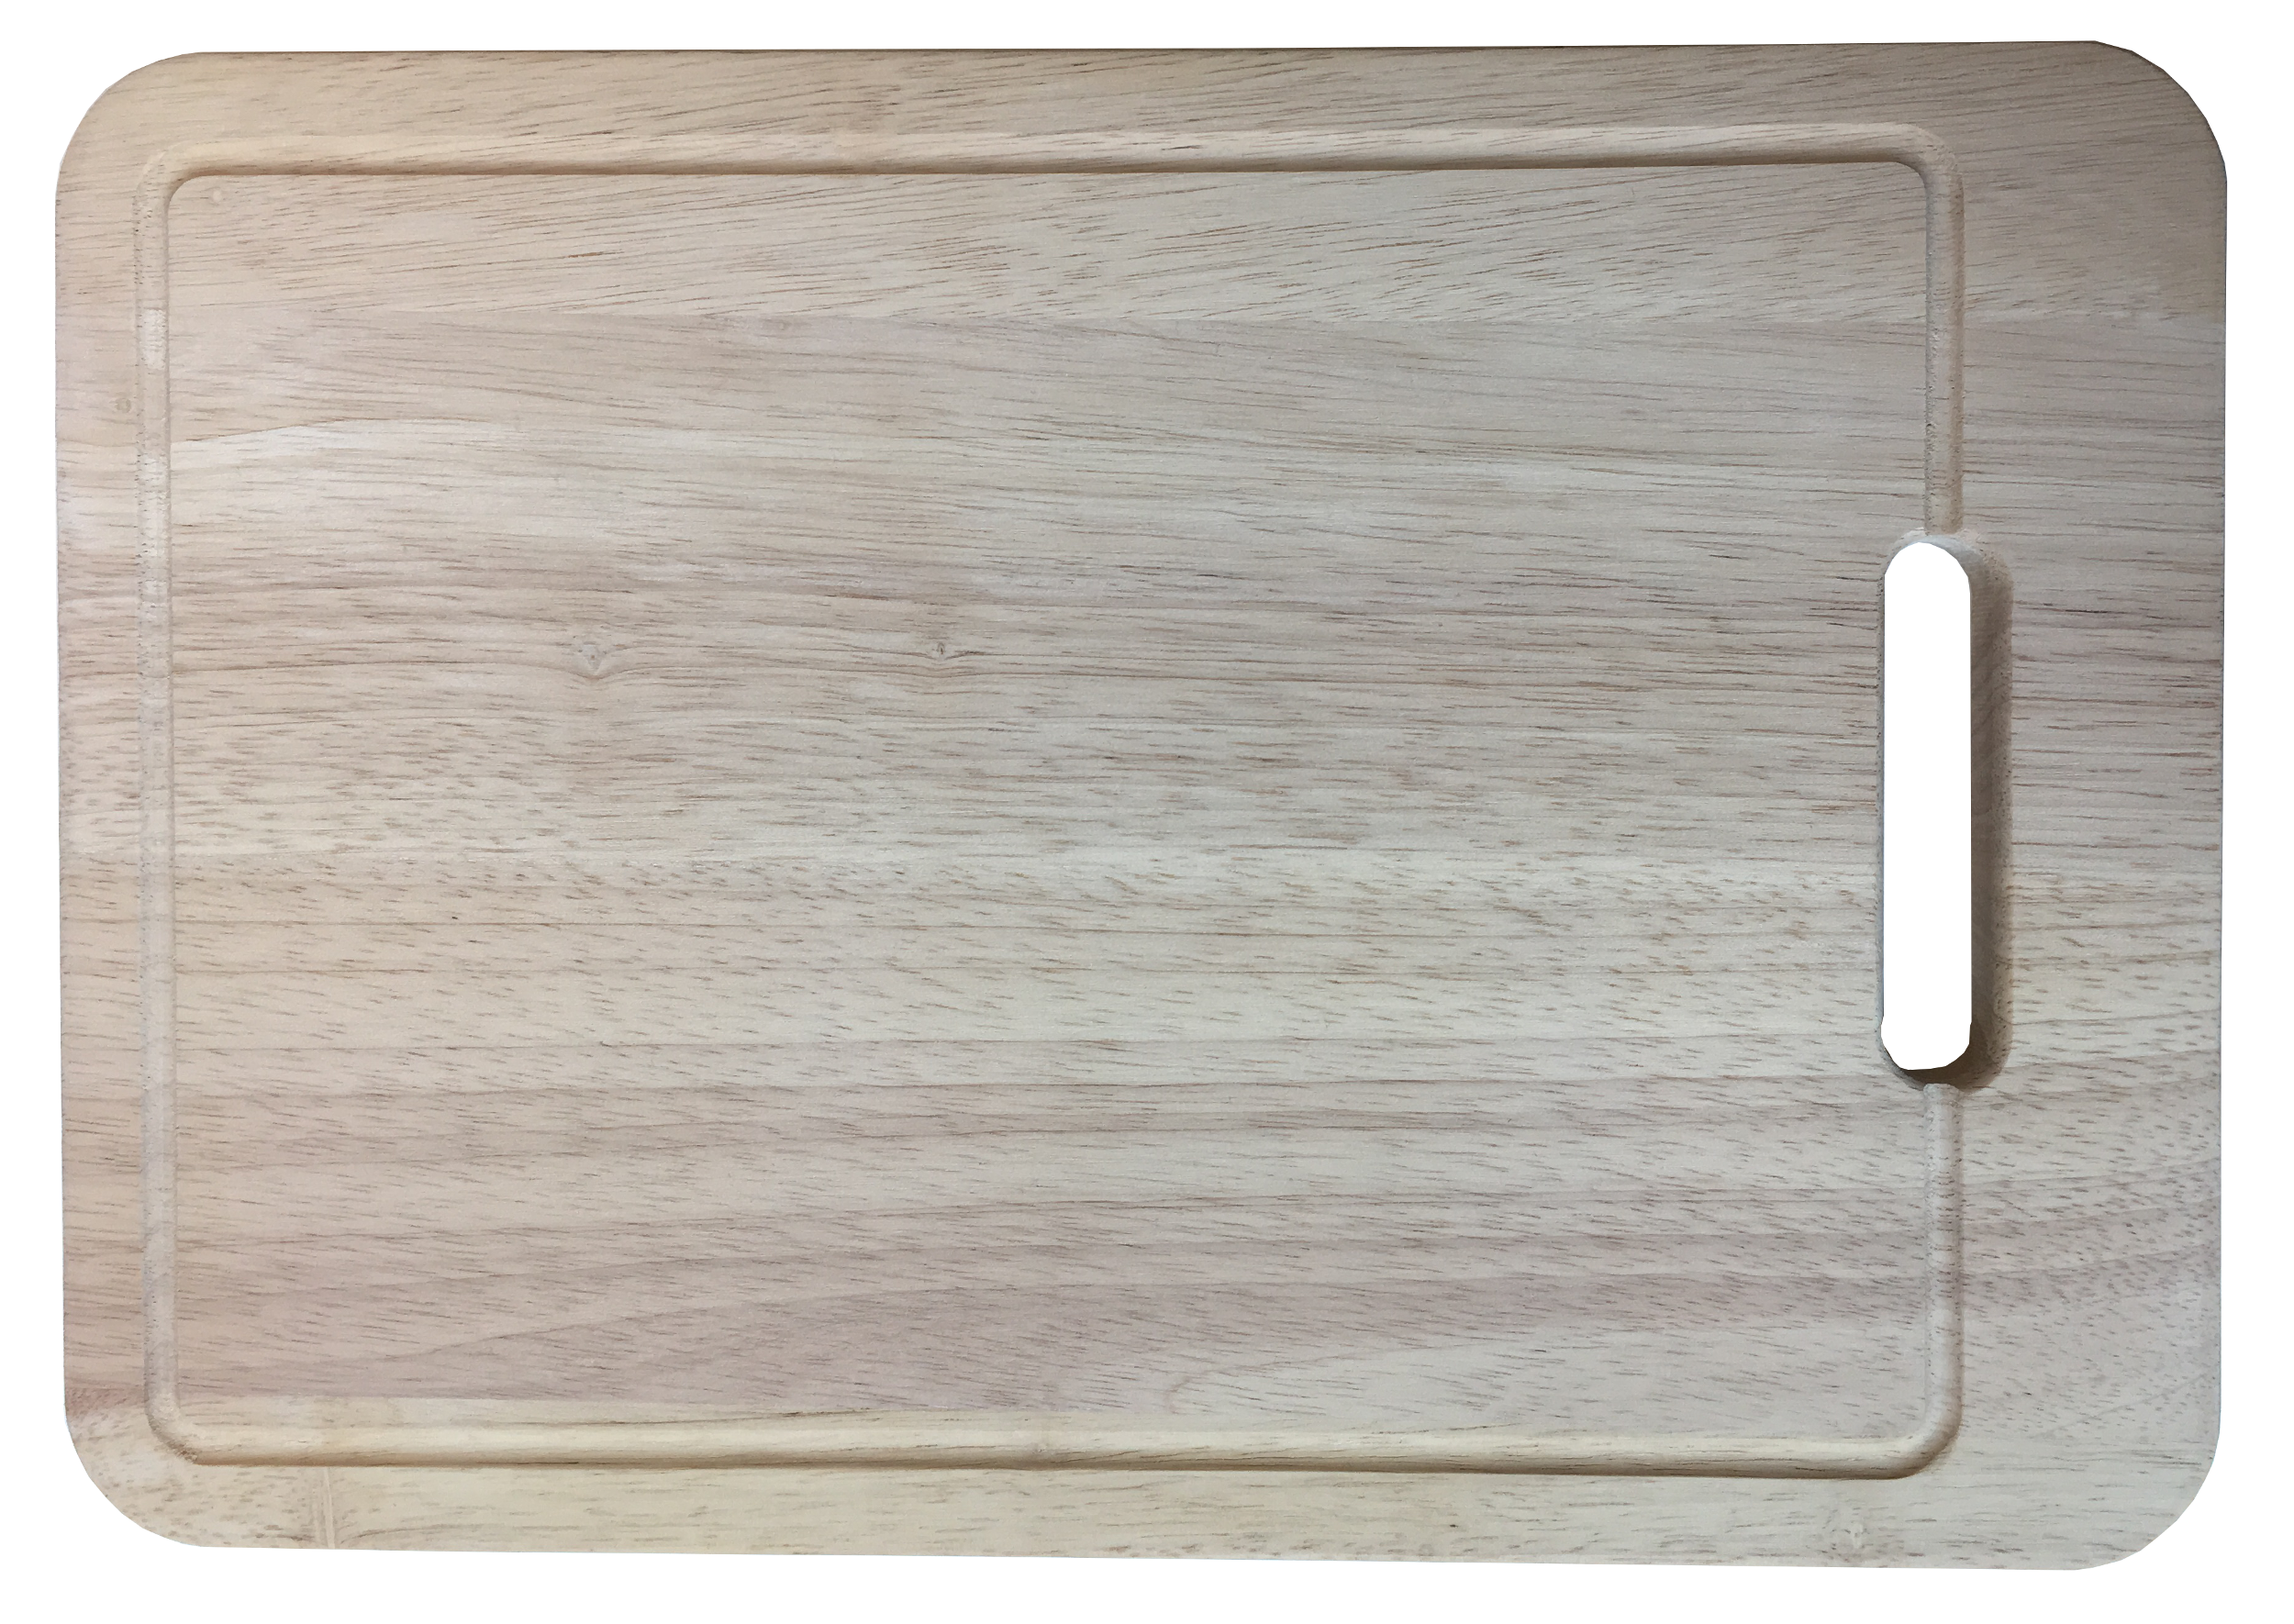 983011 Wooden Chopping Board for Kitchen